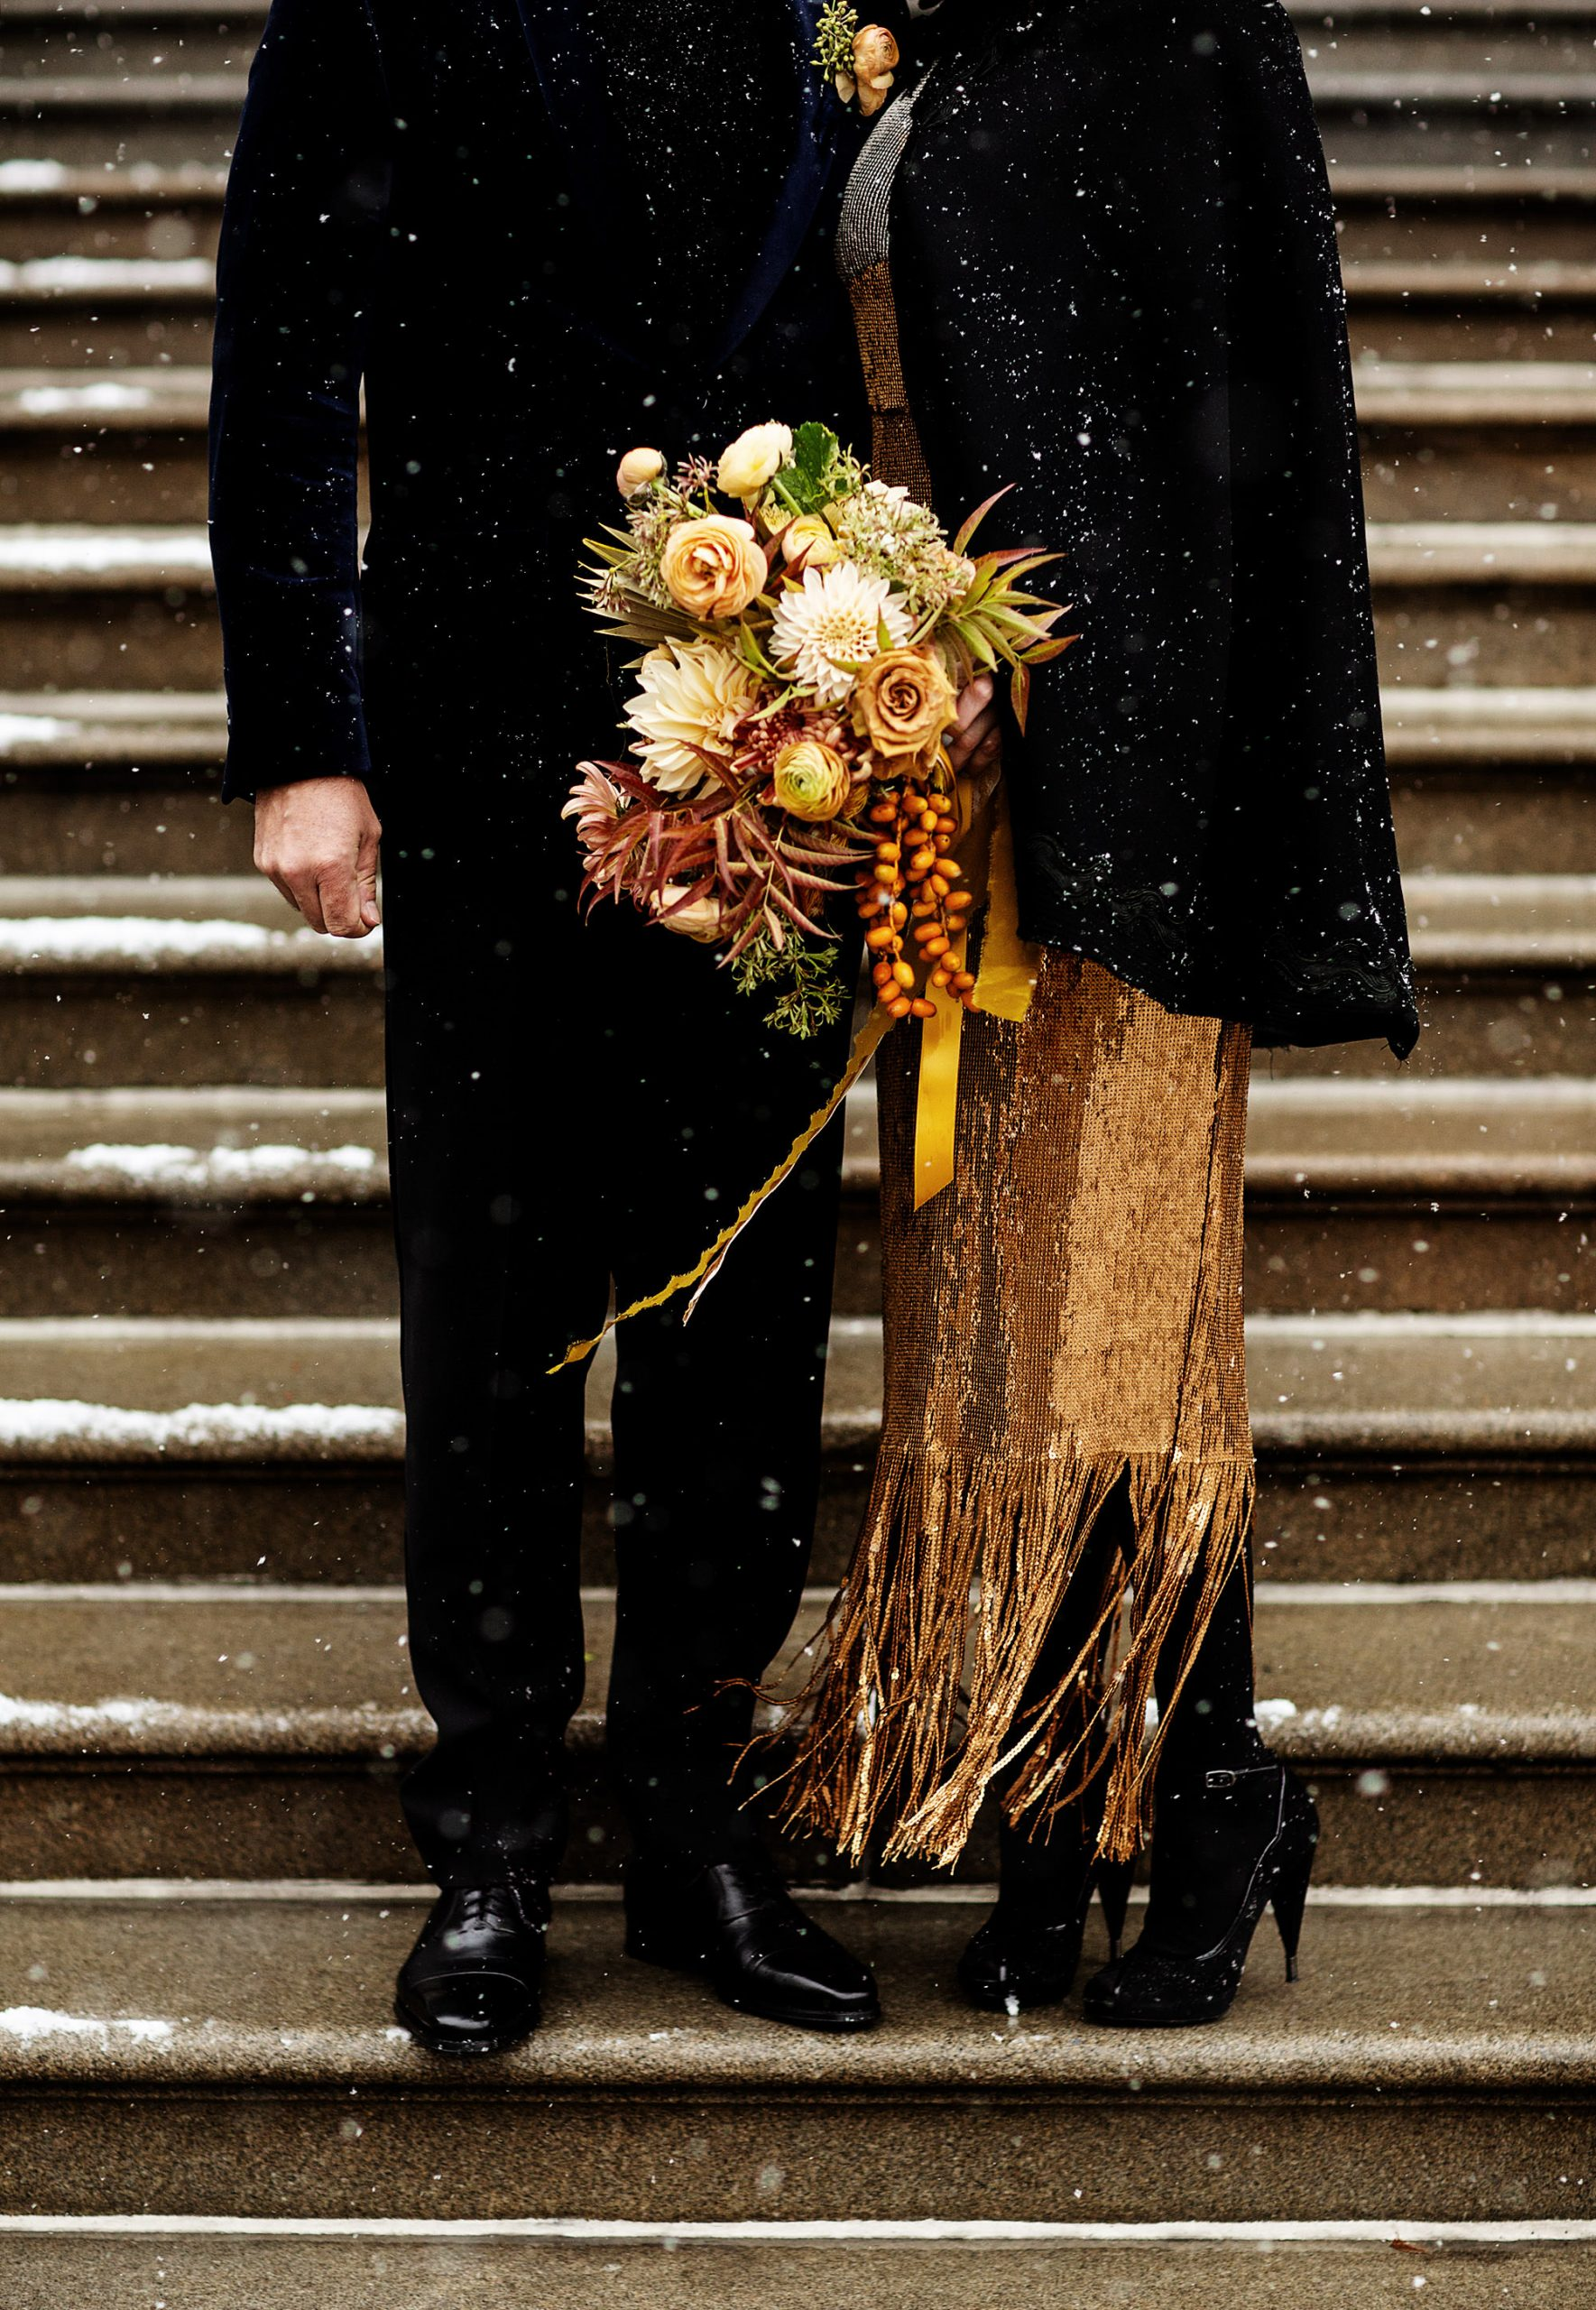 Providence City Hall Wedding  I  The couple stand on the steps of City Hall in the snow following their wedding ceremony in Providence, RI.